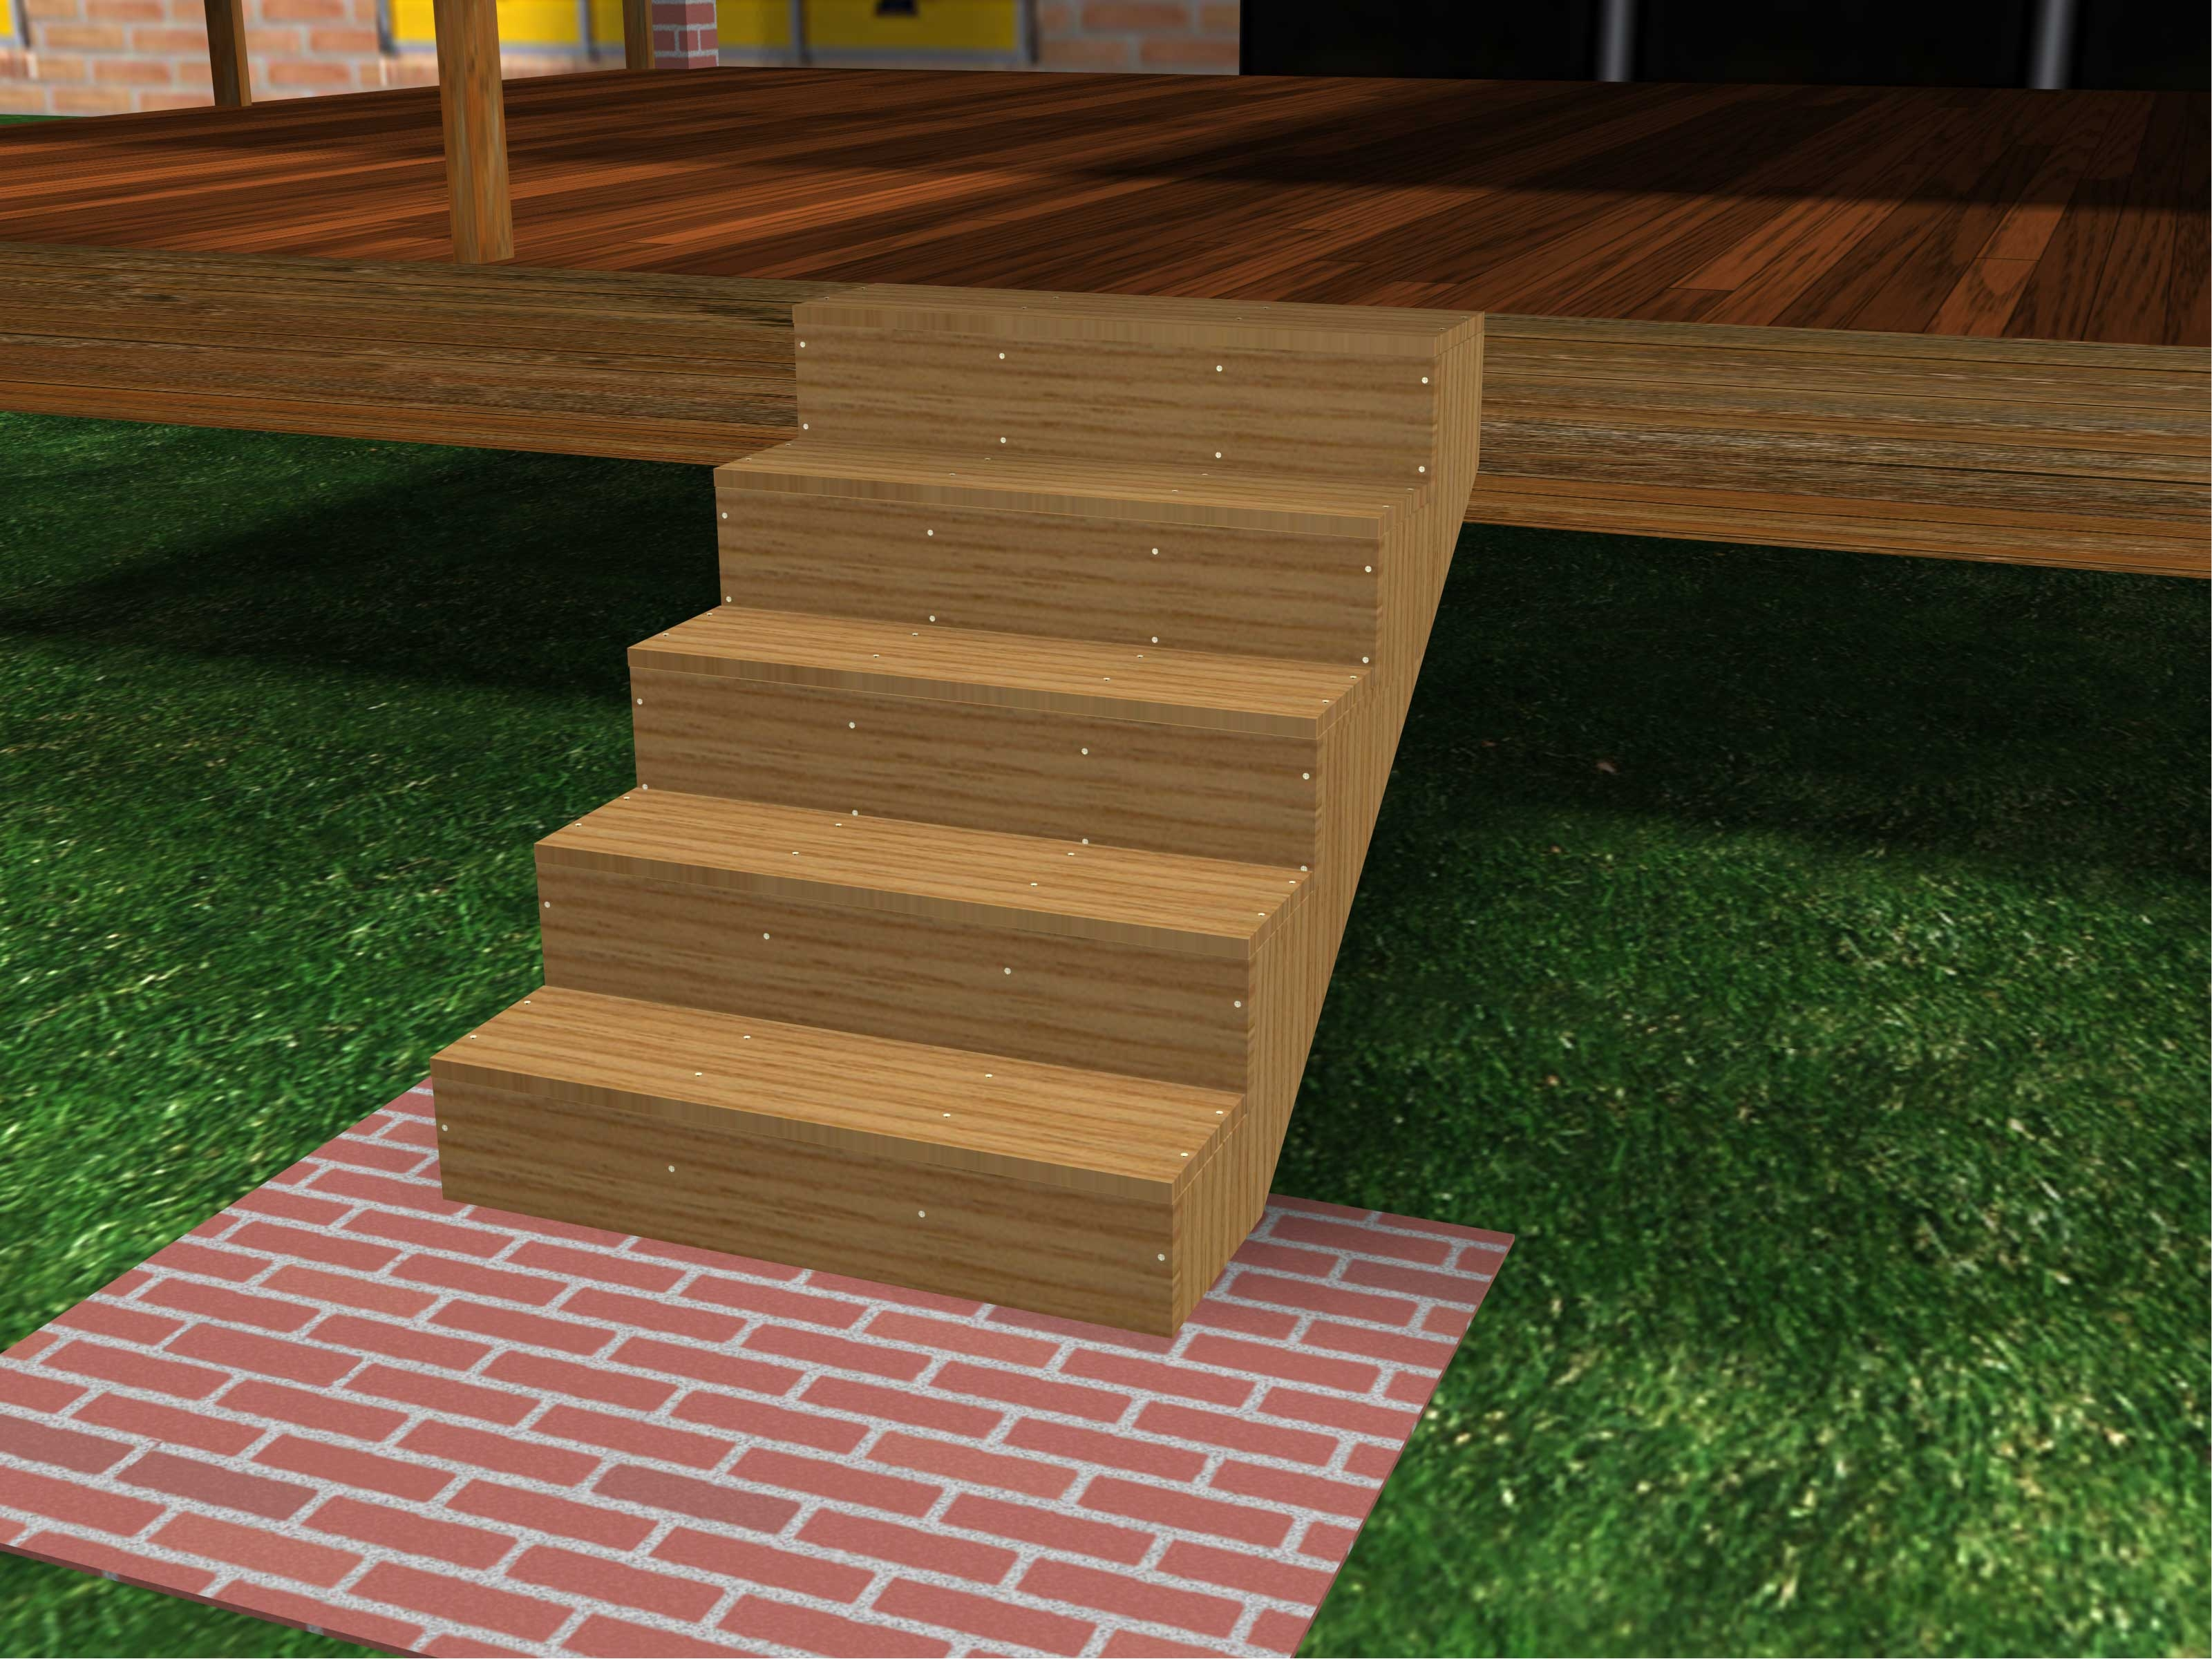 How To Build Porch Steps 13 Steps With Pictures Wikihow   Premade Steps For Outside   Front Porch   Concrete   Wooden   Precast Concrete Steps   Deck Stairs